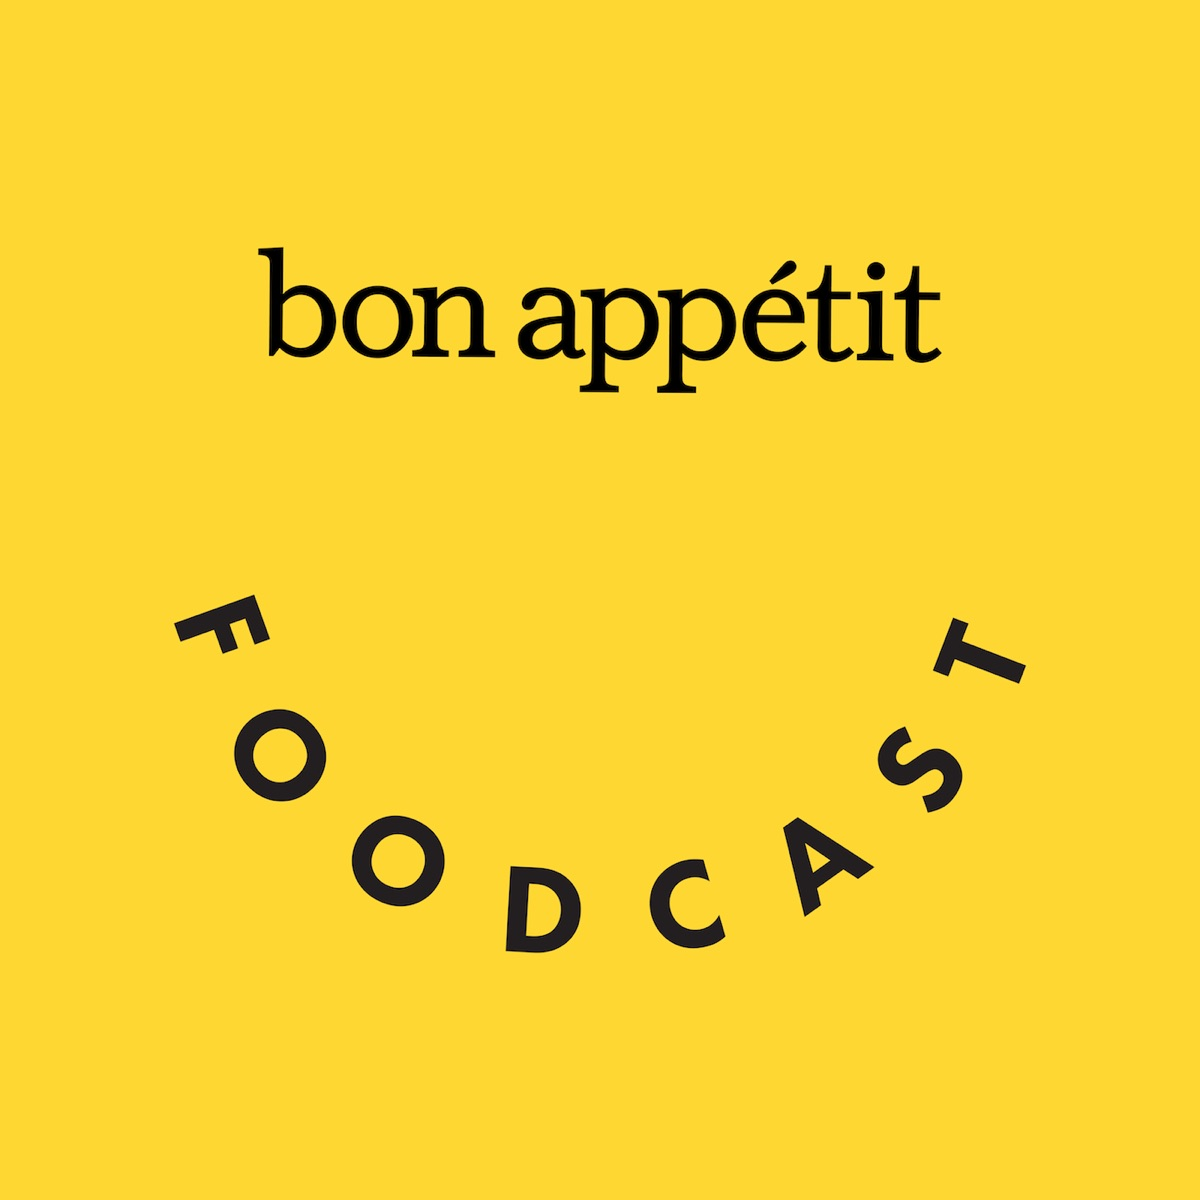 Episode 266: Tom Colicchio Takes Capitol Hill